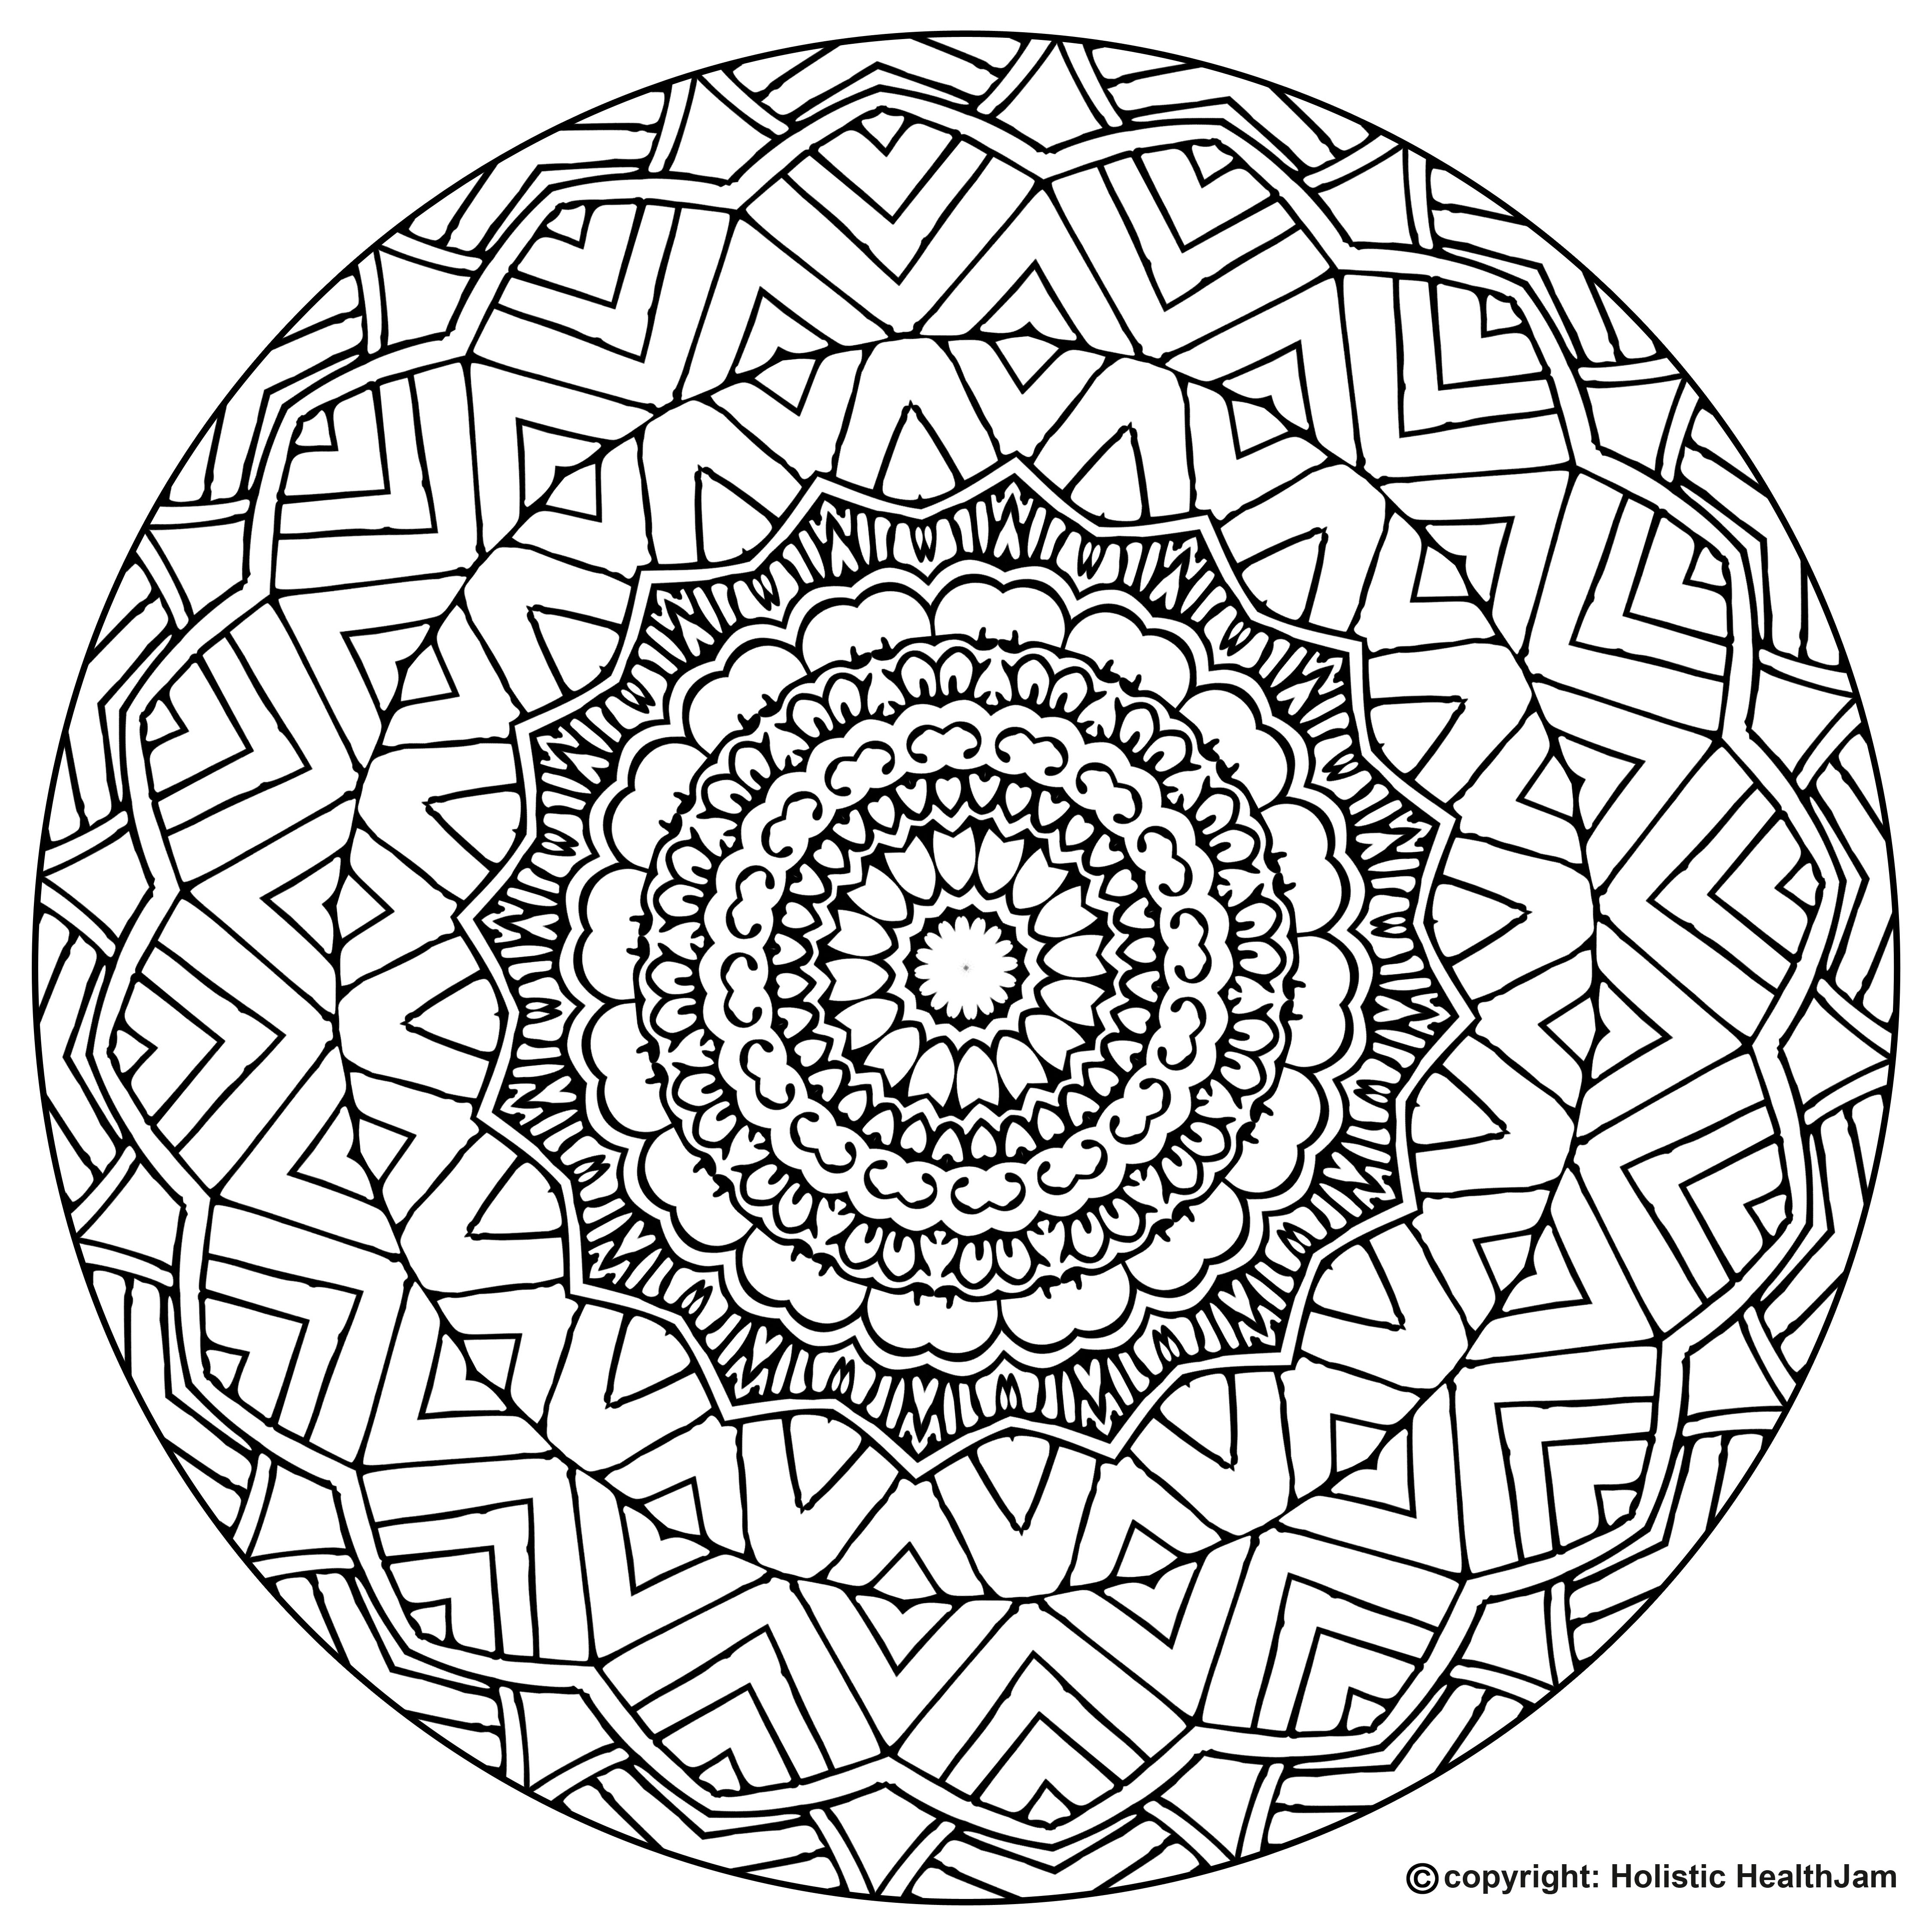 free printable mandala free printable mandala coloring book pages for adults and kids free printable mandala